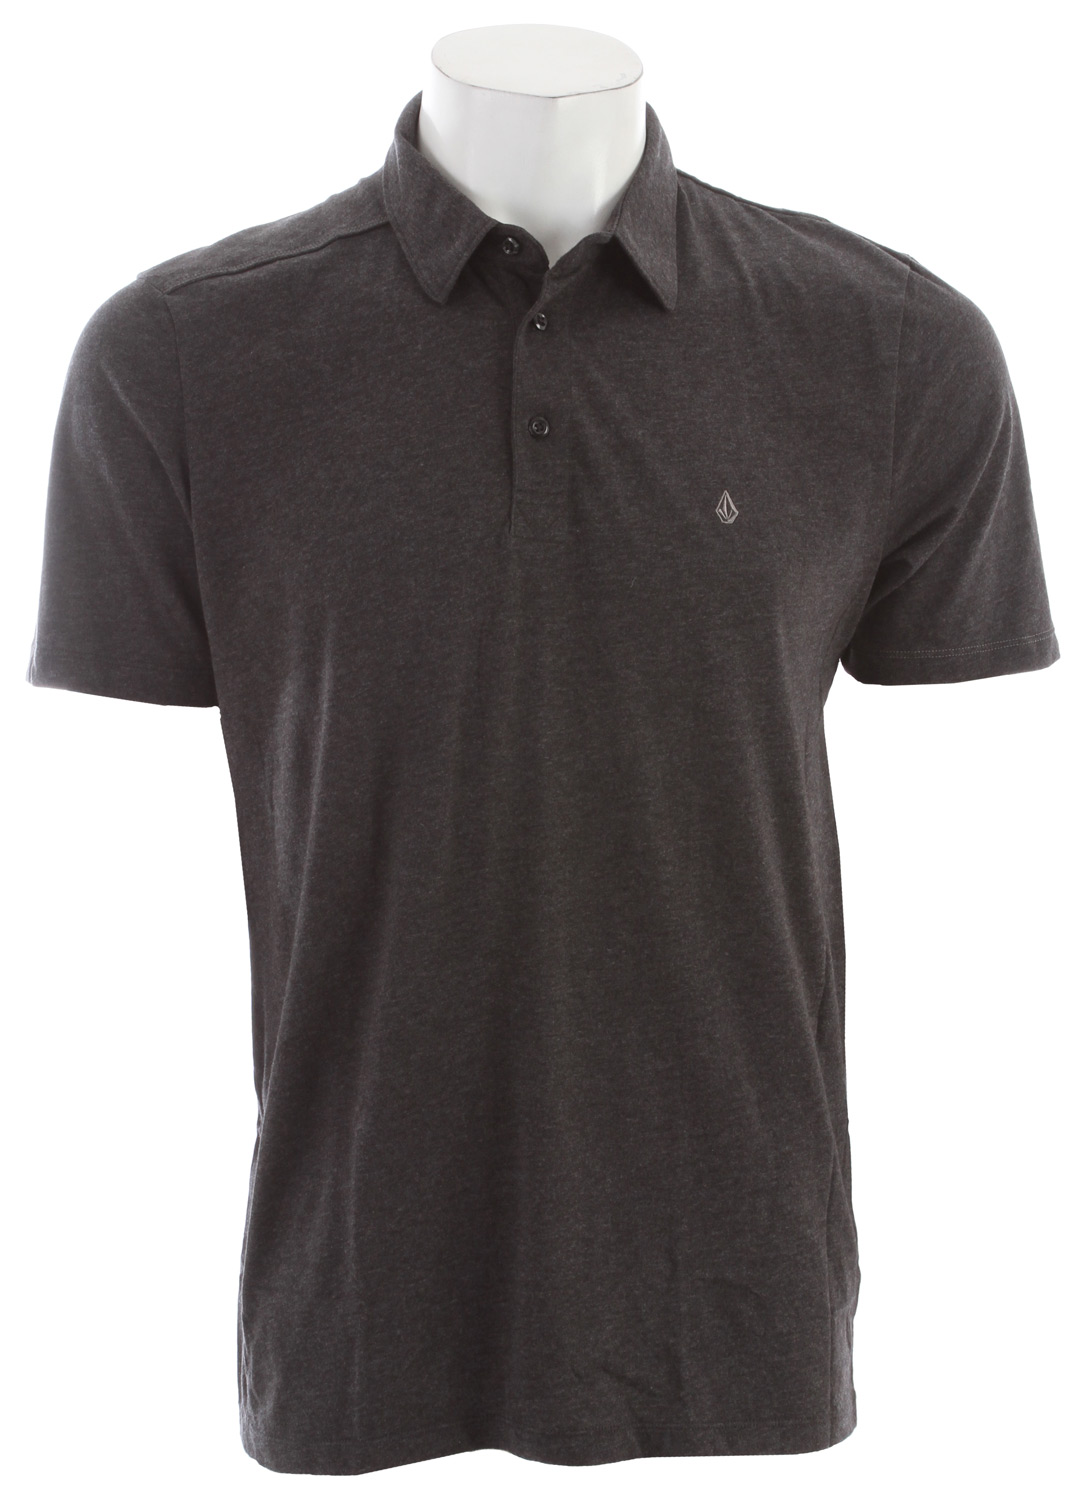 Surf Key Features of the Volcom Blackout Polo: Slim fit polo Contrast piping detail Contrast inside back yoke Side seam flag label, Stone embroidery 60% Cotton / 40% Polyester Jersey, 30/1, 150gsm - $24.95